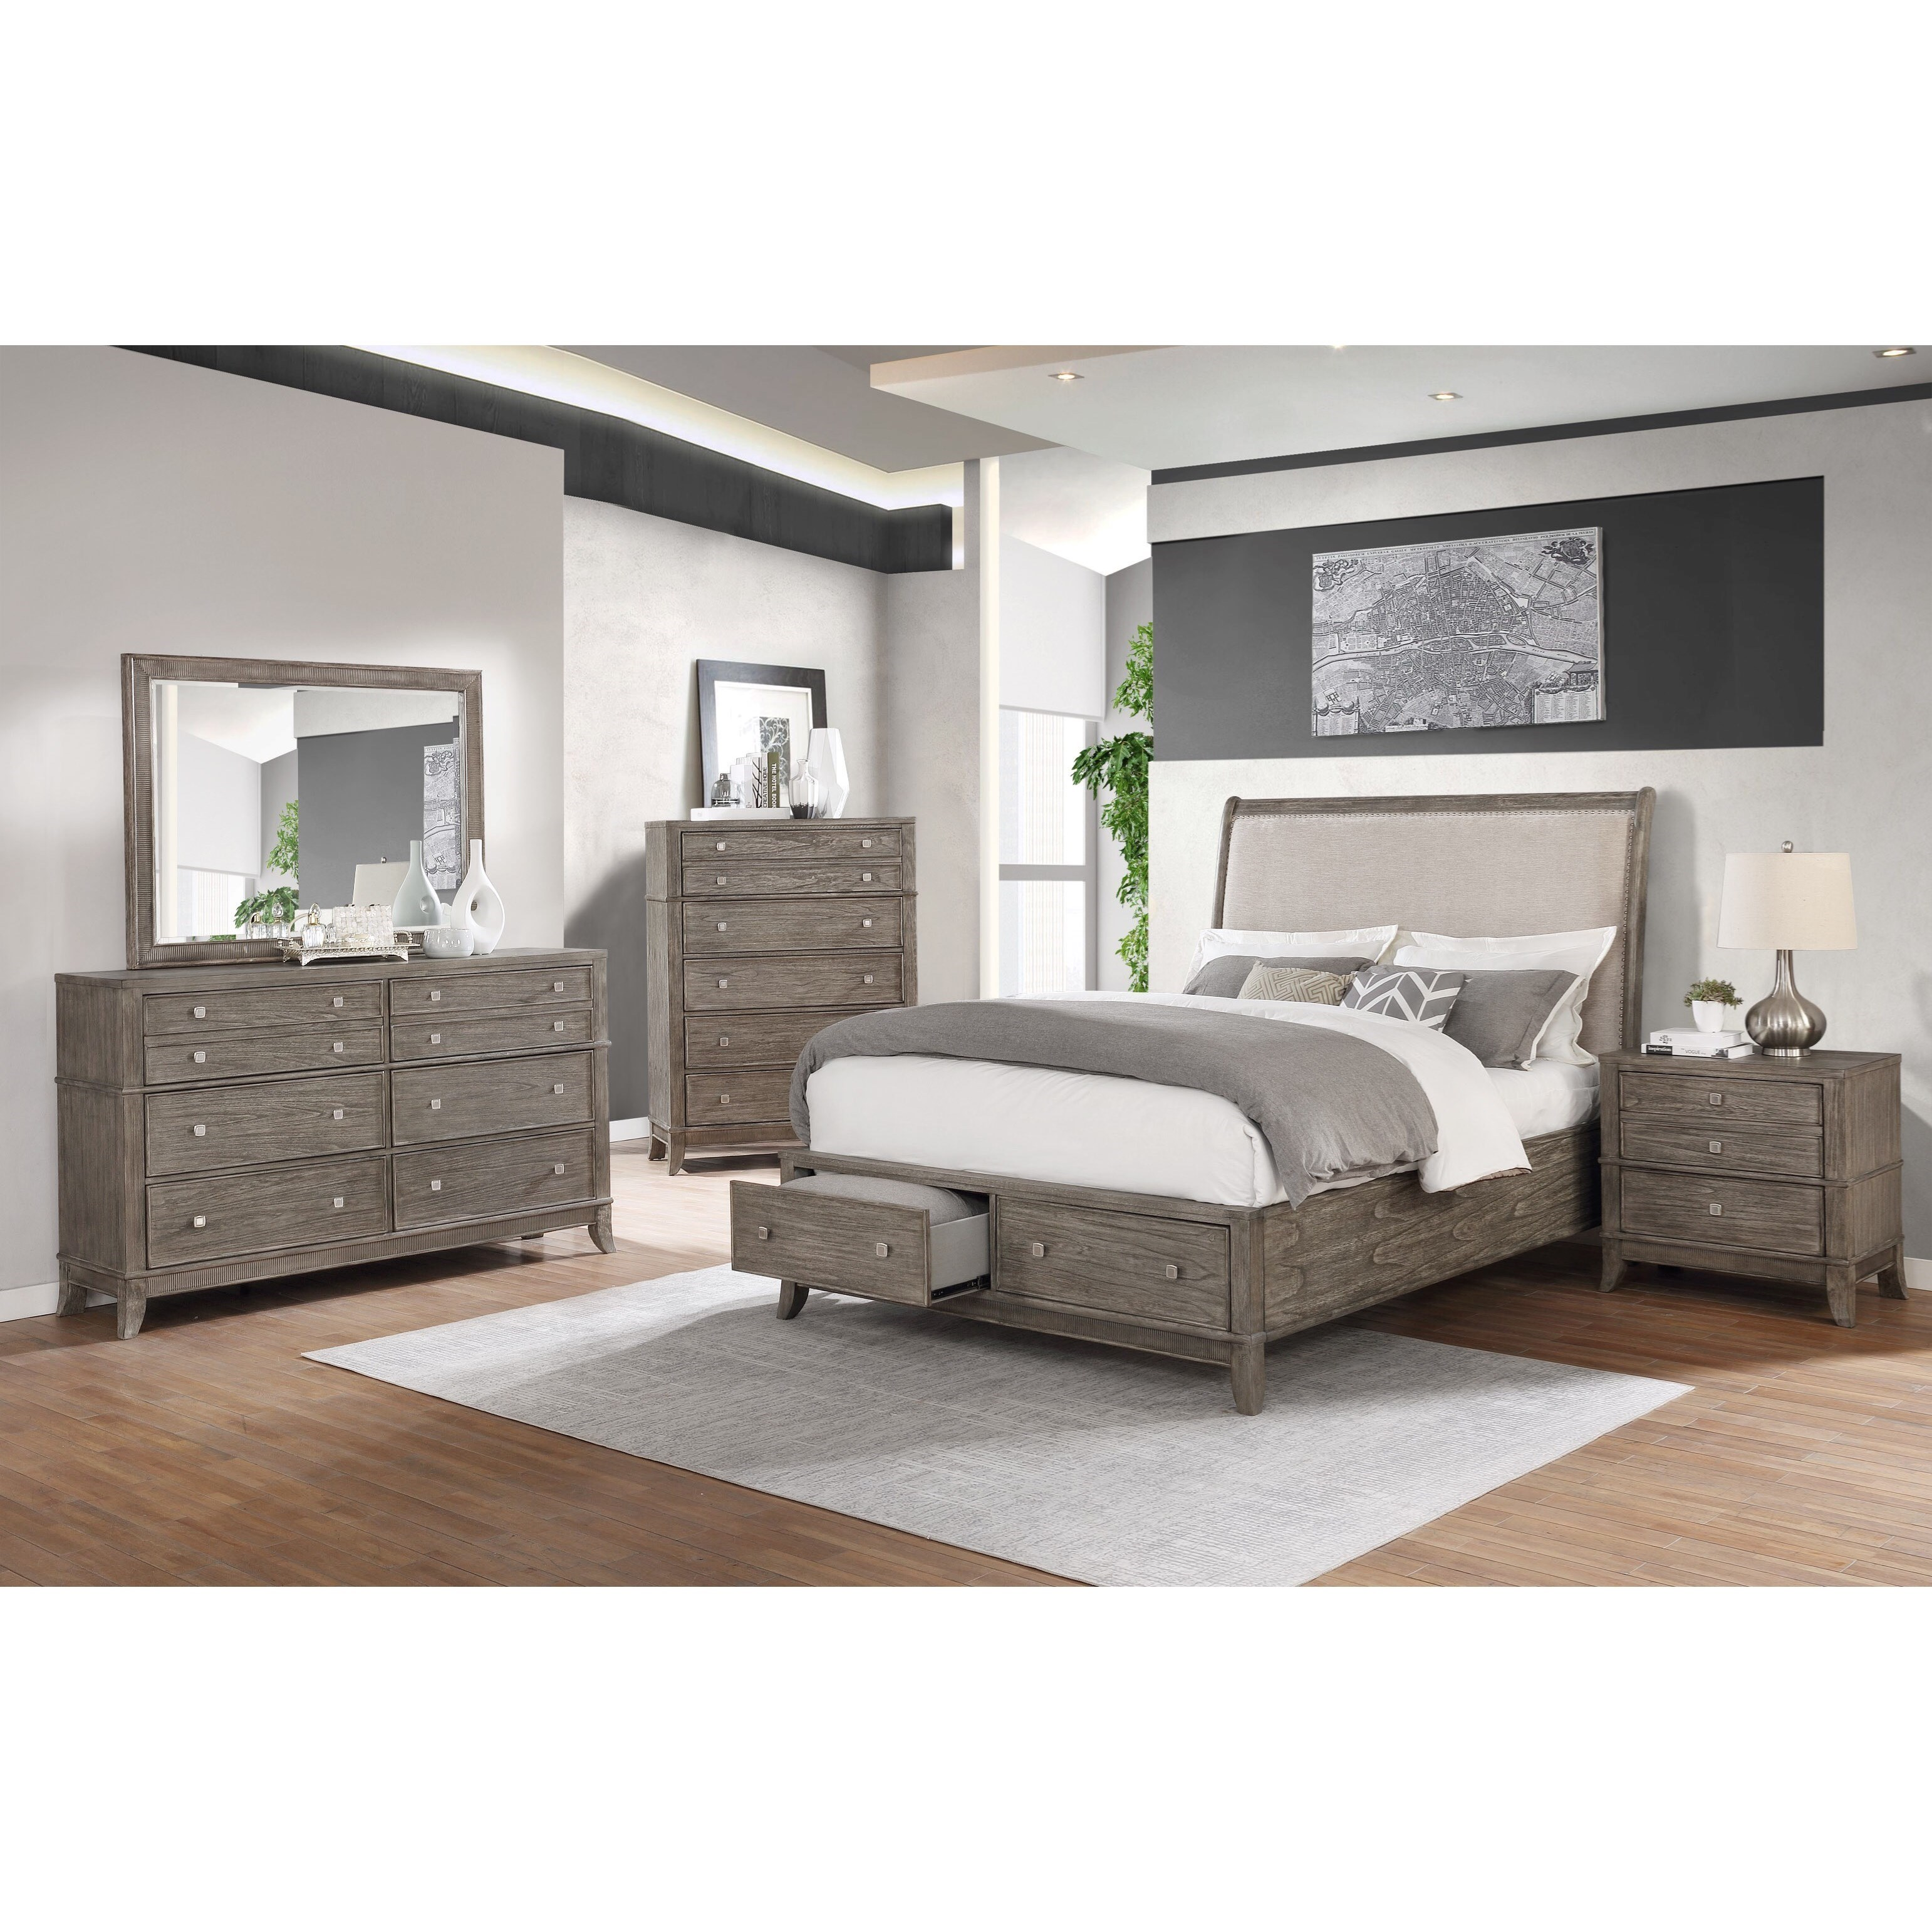 B00193 6 Piece King Bedroom by Avalon Furniture at Household Furniture